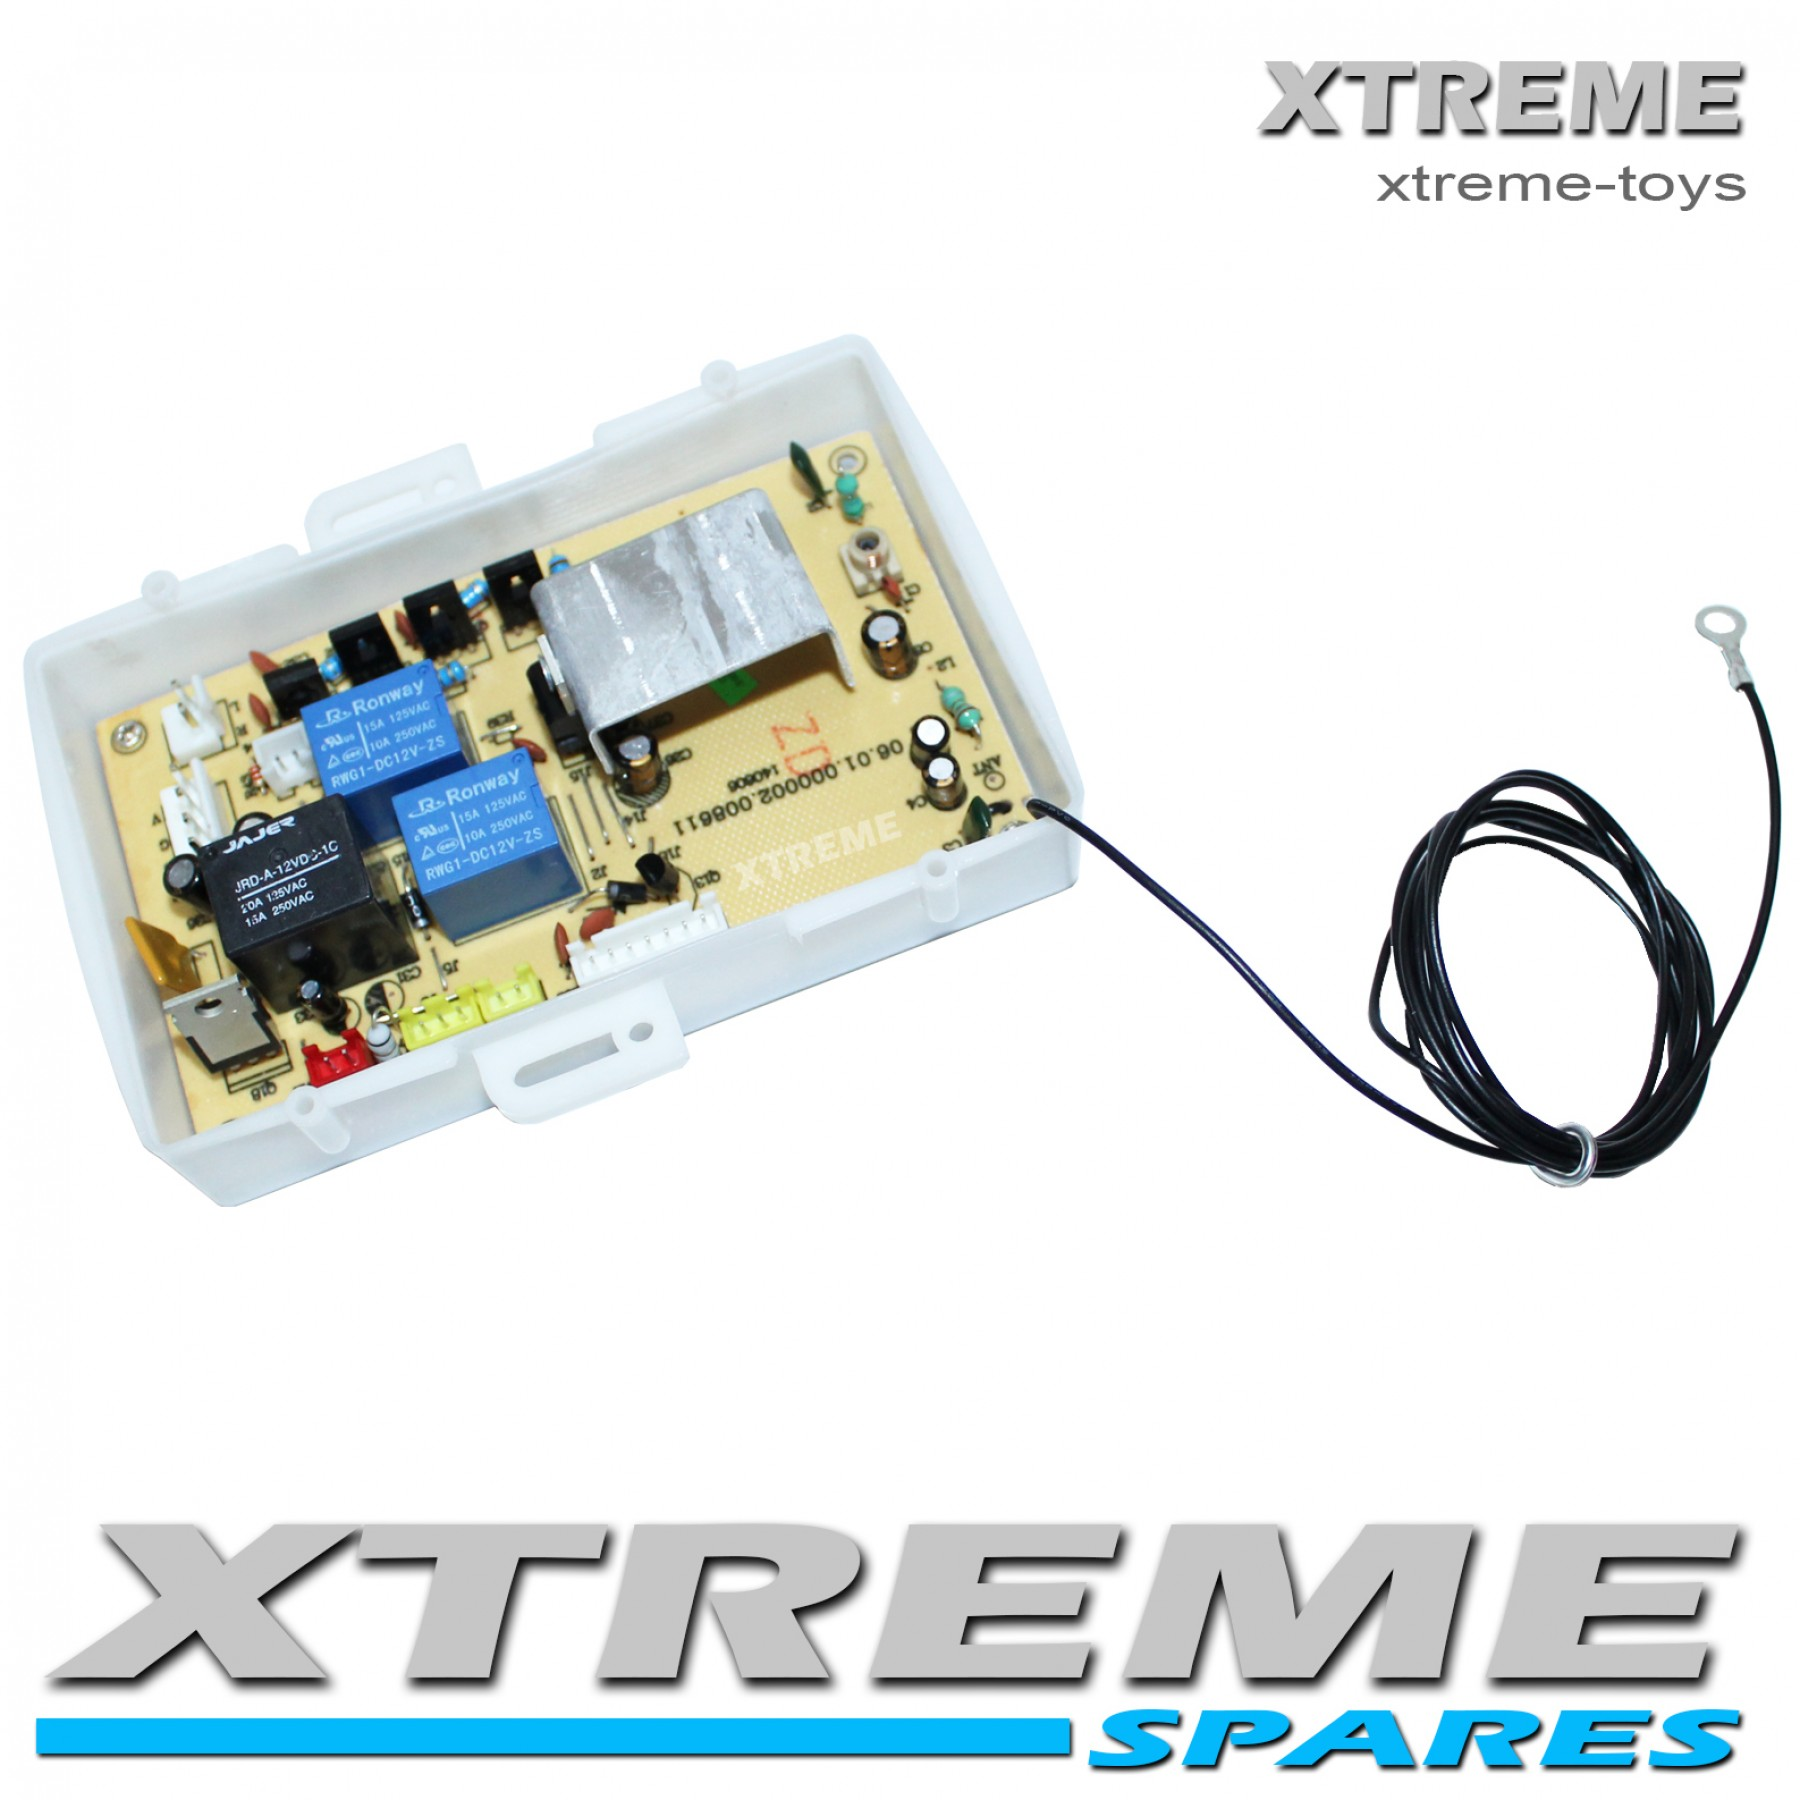 NEW 12V RIDE ON RANGE ROVER CAR REPLACEMENT RECEIVER CONTROL BOARD / PARTS